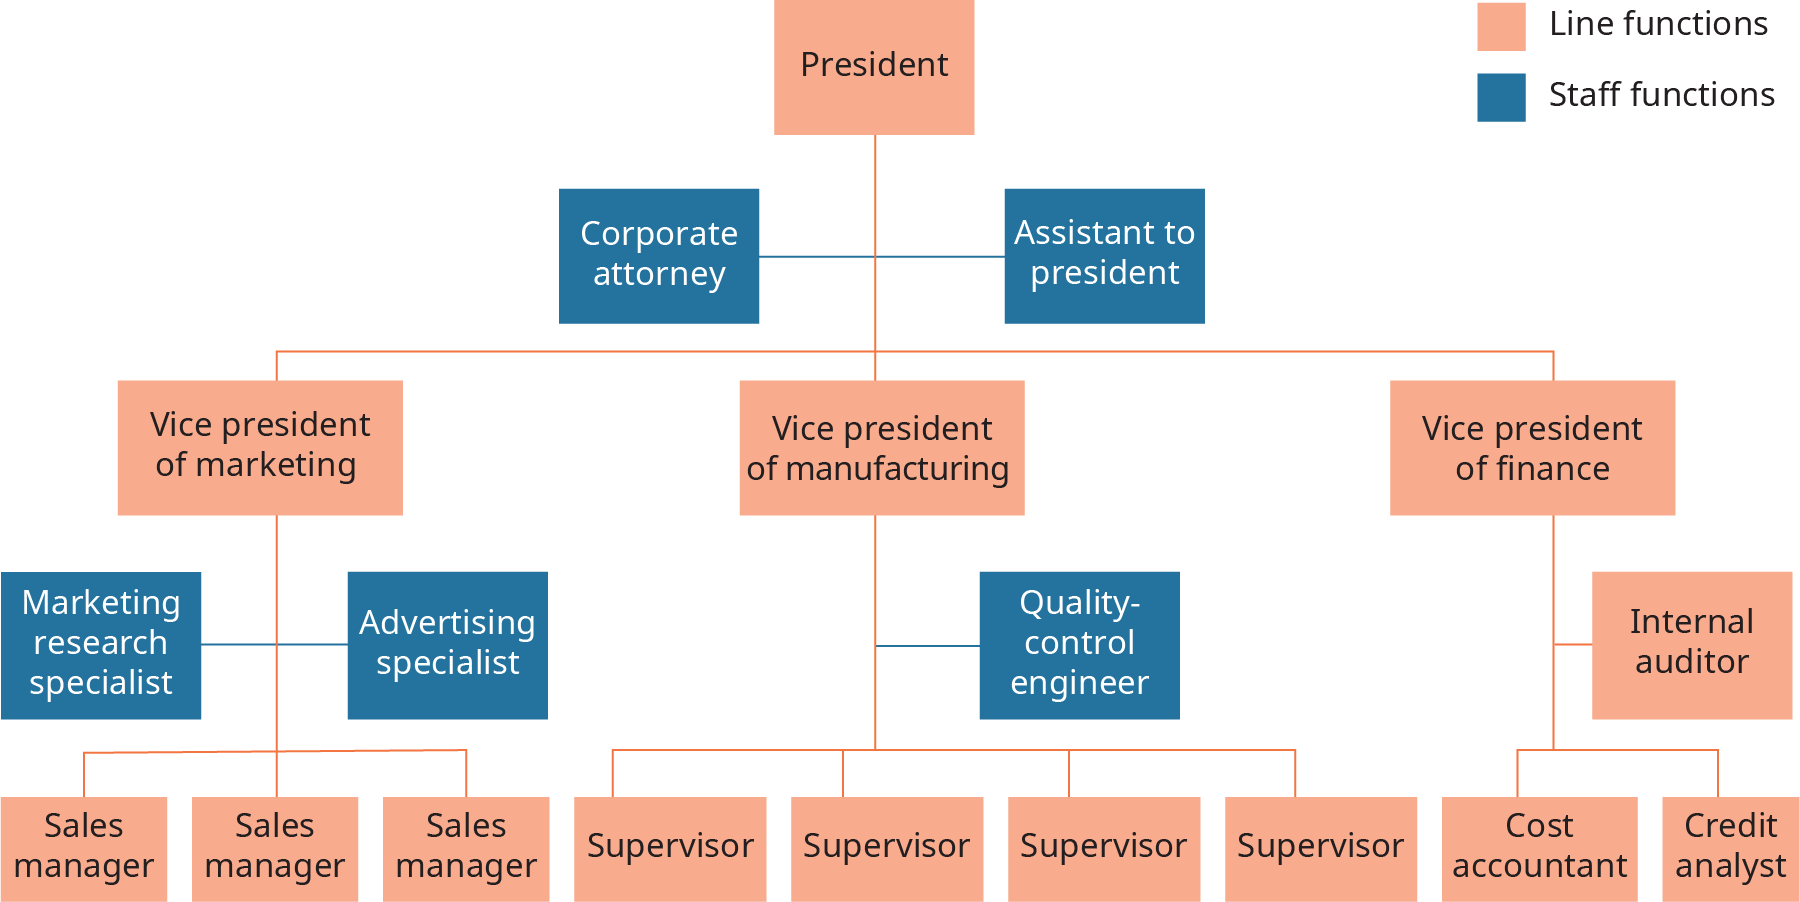 At the top of the diagram is the president, which is shown as a line function. A line extends down, and connects to three separate line functions, which are vice president of marketing, and vice president of manufacturing, and vice president of finance. On each side of this connective line are staff functions, which are corporate attorney, and assistant to president. A line extends down from vice president of marketing to 3 line functions, which are each labeled sales manager. On each side of this connective line are staff functions, shown as marketing research specialist, and advertising specialist. A line extends down from vice president, and connects to 3 line functions, each is labeled, supervisor. A staff function extends from the connective line, and is quality control engineer. A line extends down from vice president of finance, and connects to 2 line functions, cost accountant, and credit analysis. Between these 2 positions is an internal auditor, which is a line function.